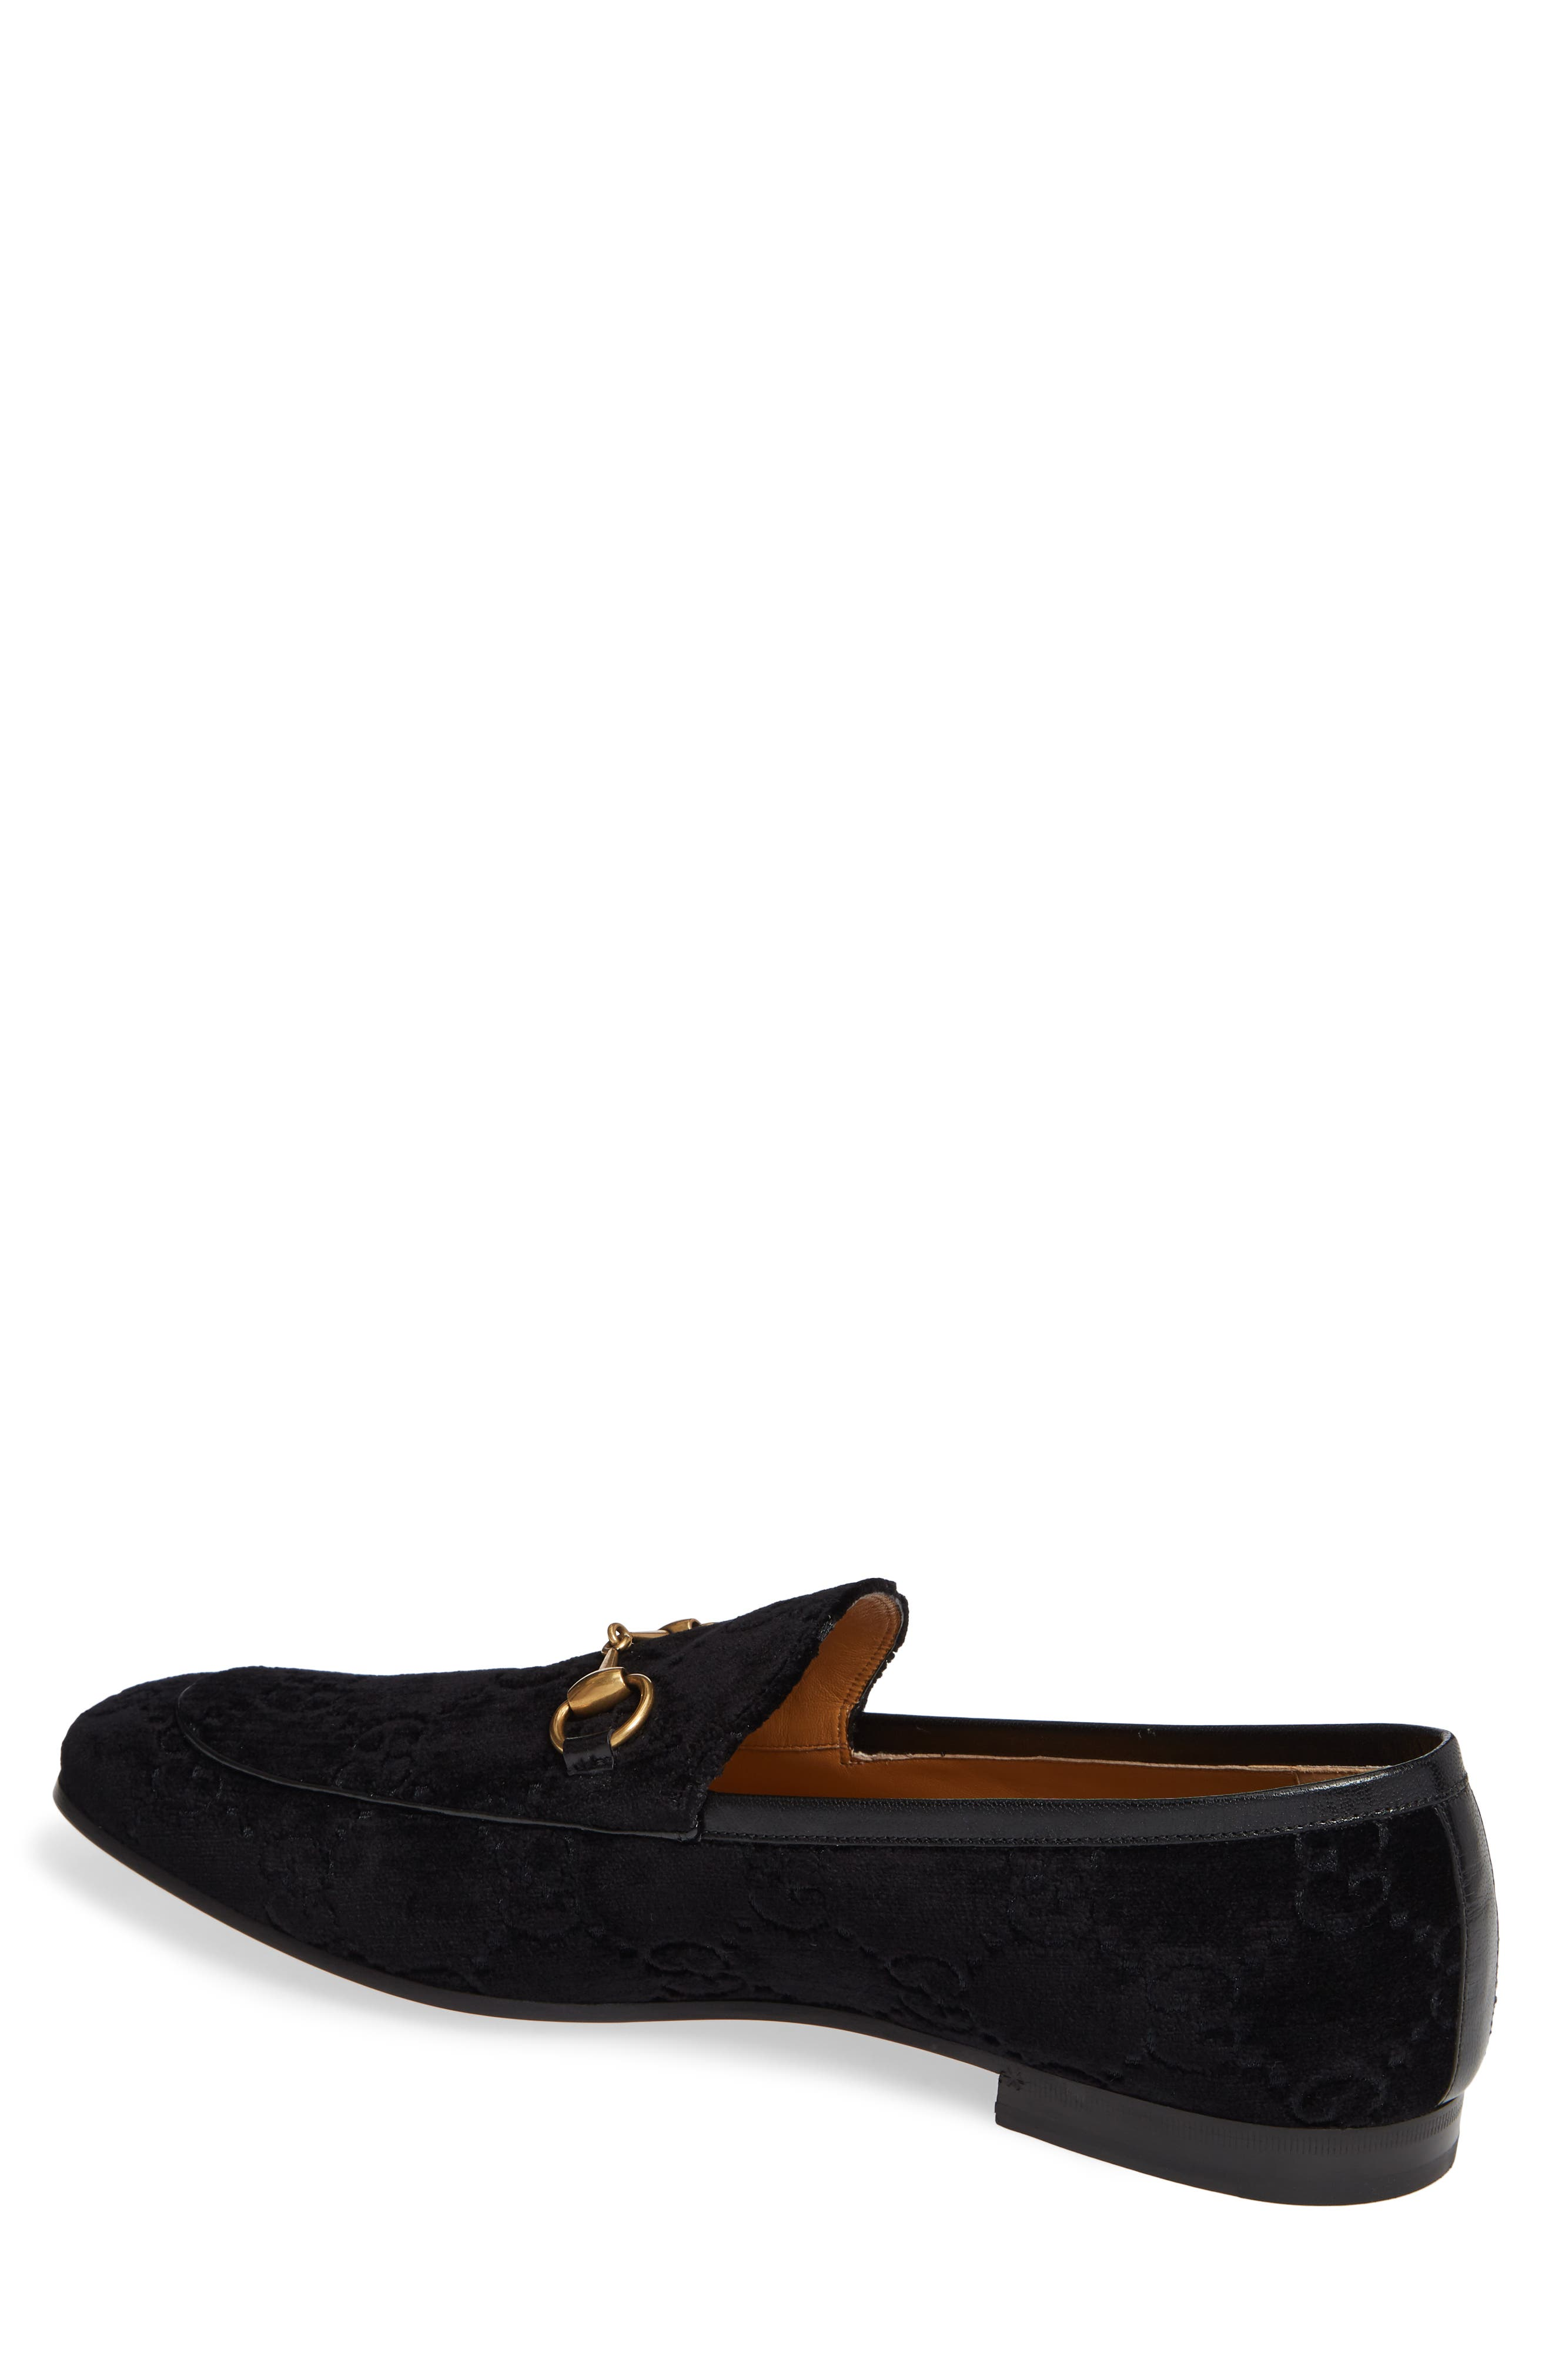 GUCCI, Jordaan GG Velvet Loafer, Alternate thumbnail 2, color, NERO/ NERO